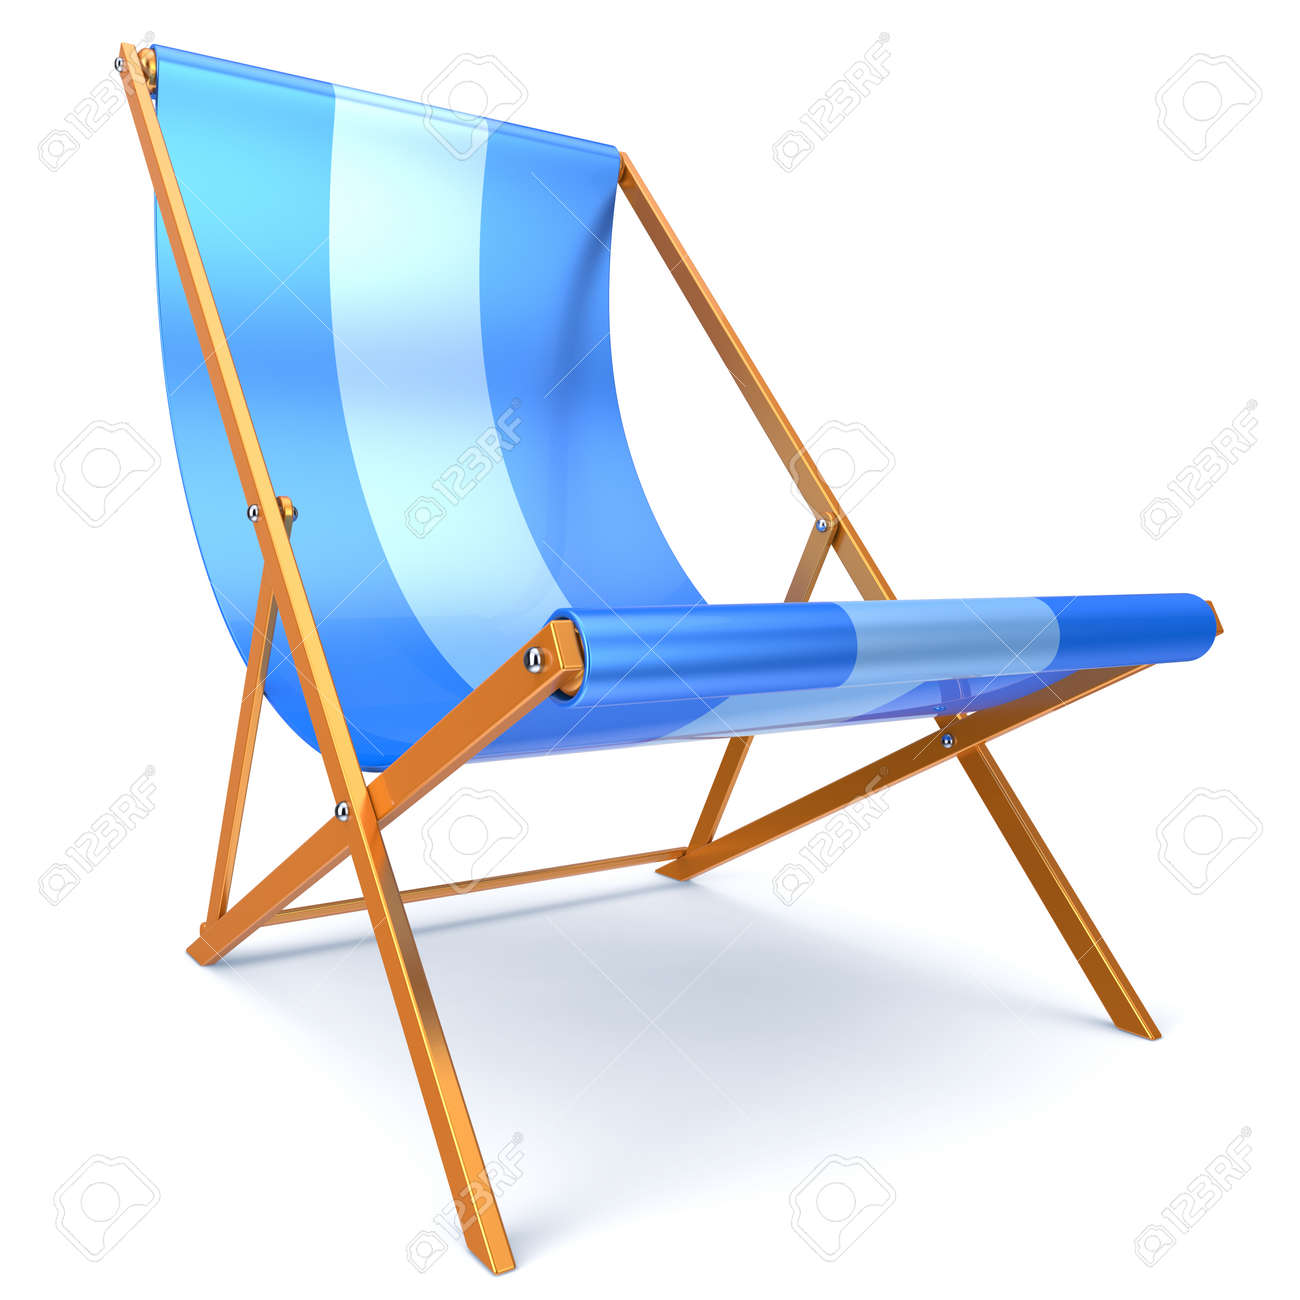 Silla Chaise Longue Beach Chair Blue Chaise Longue Nobody Relaxation Holidays Spa